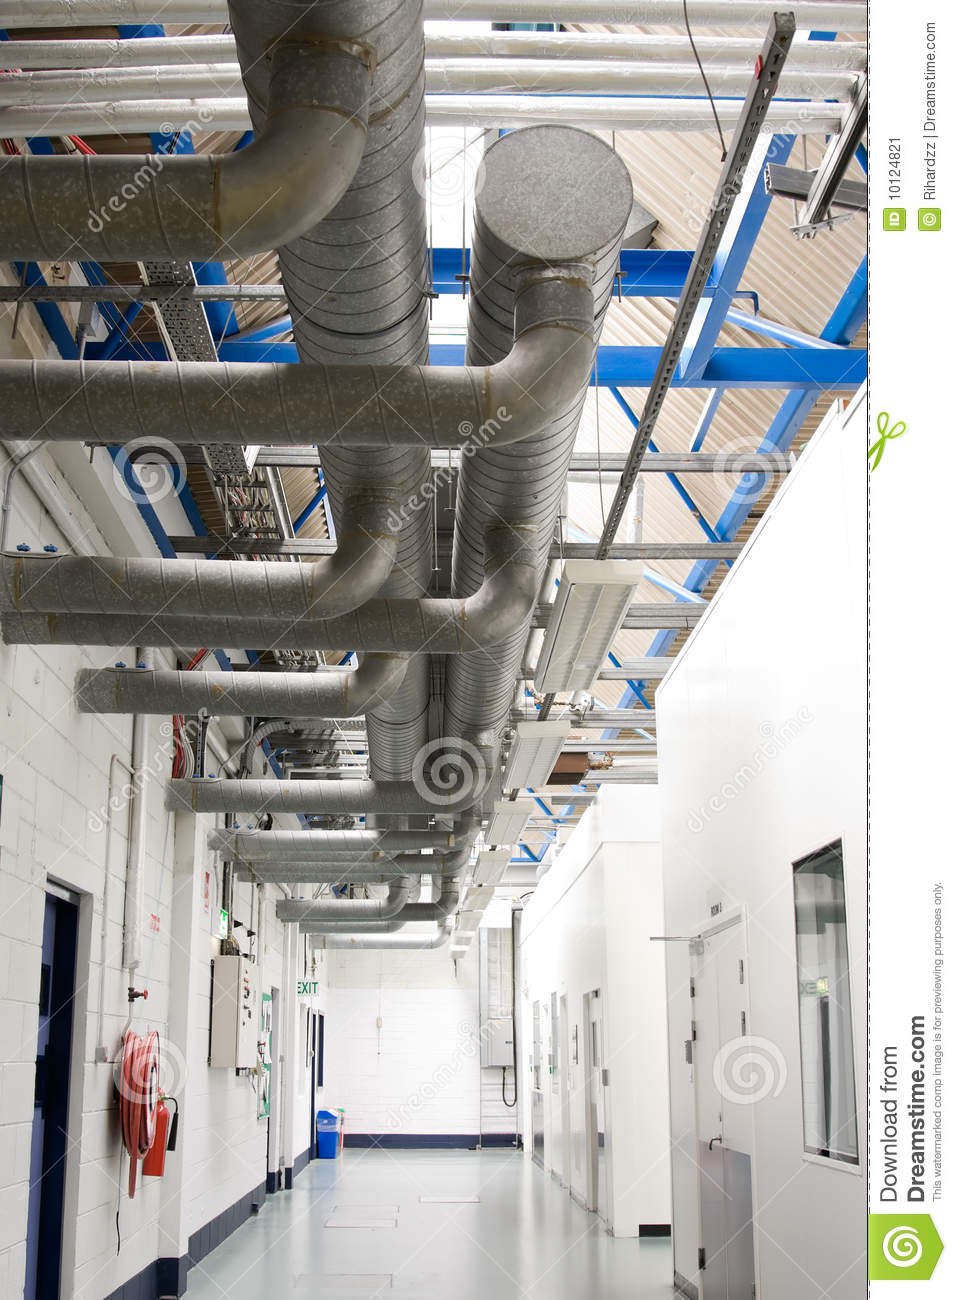 Industrial Air Pipes : Industrial air conditioner pipes sistem stock image